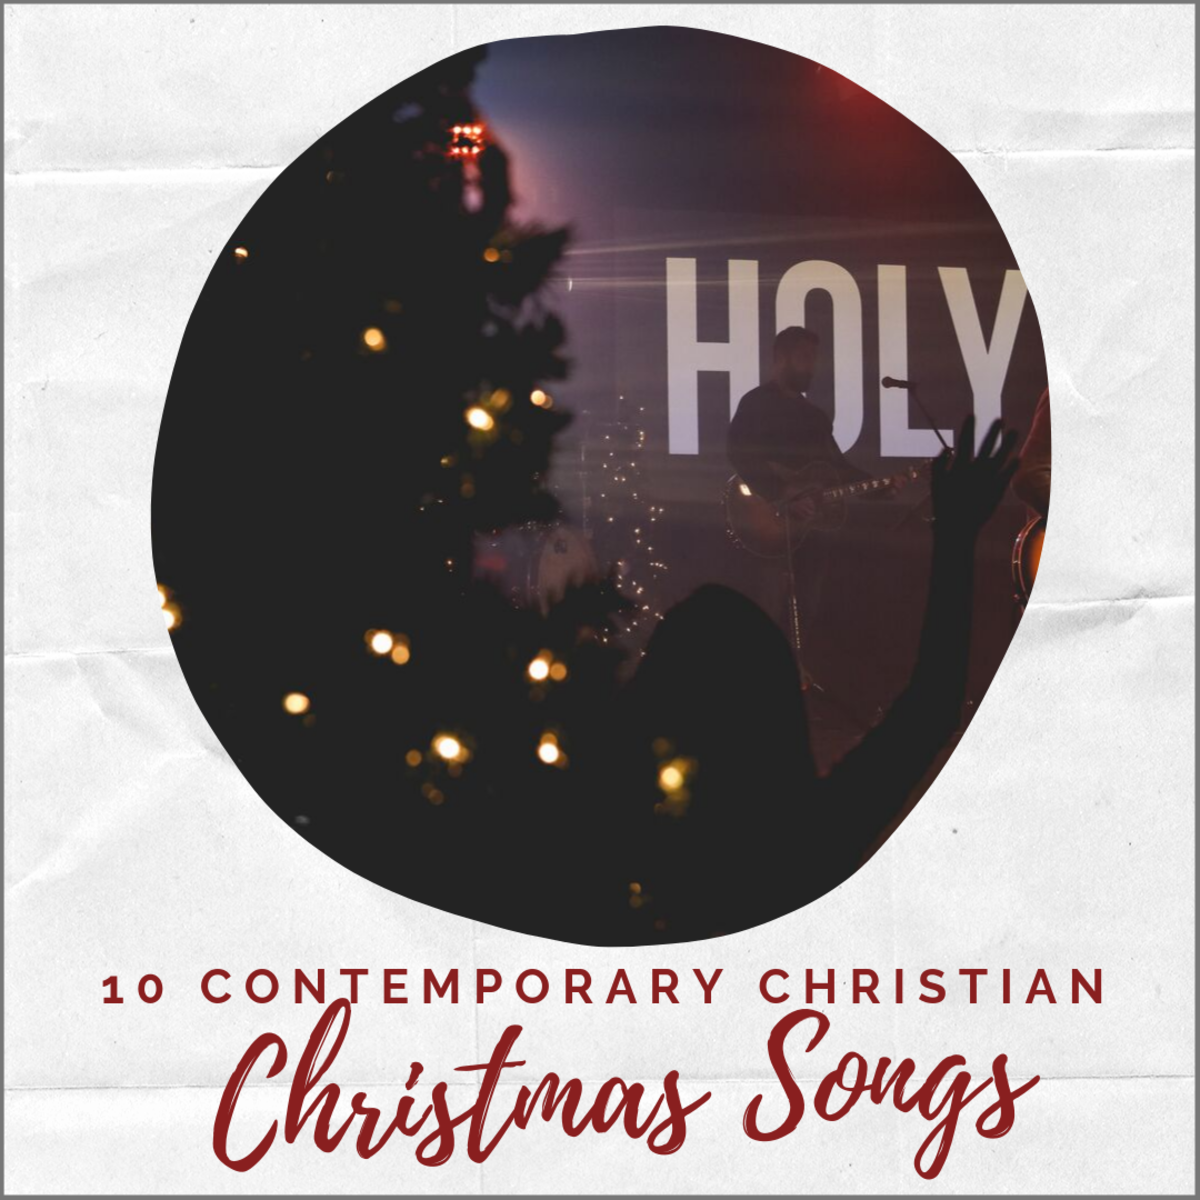 10 Contemporary Christian Christmas Songs